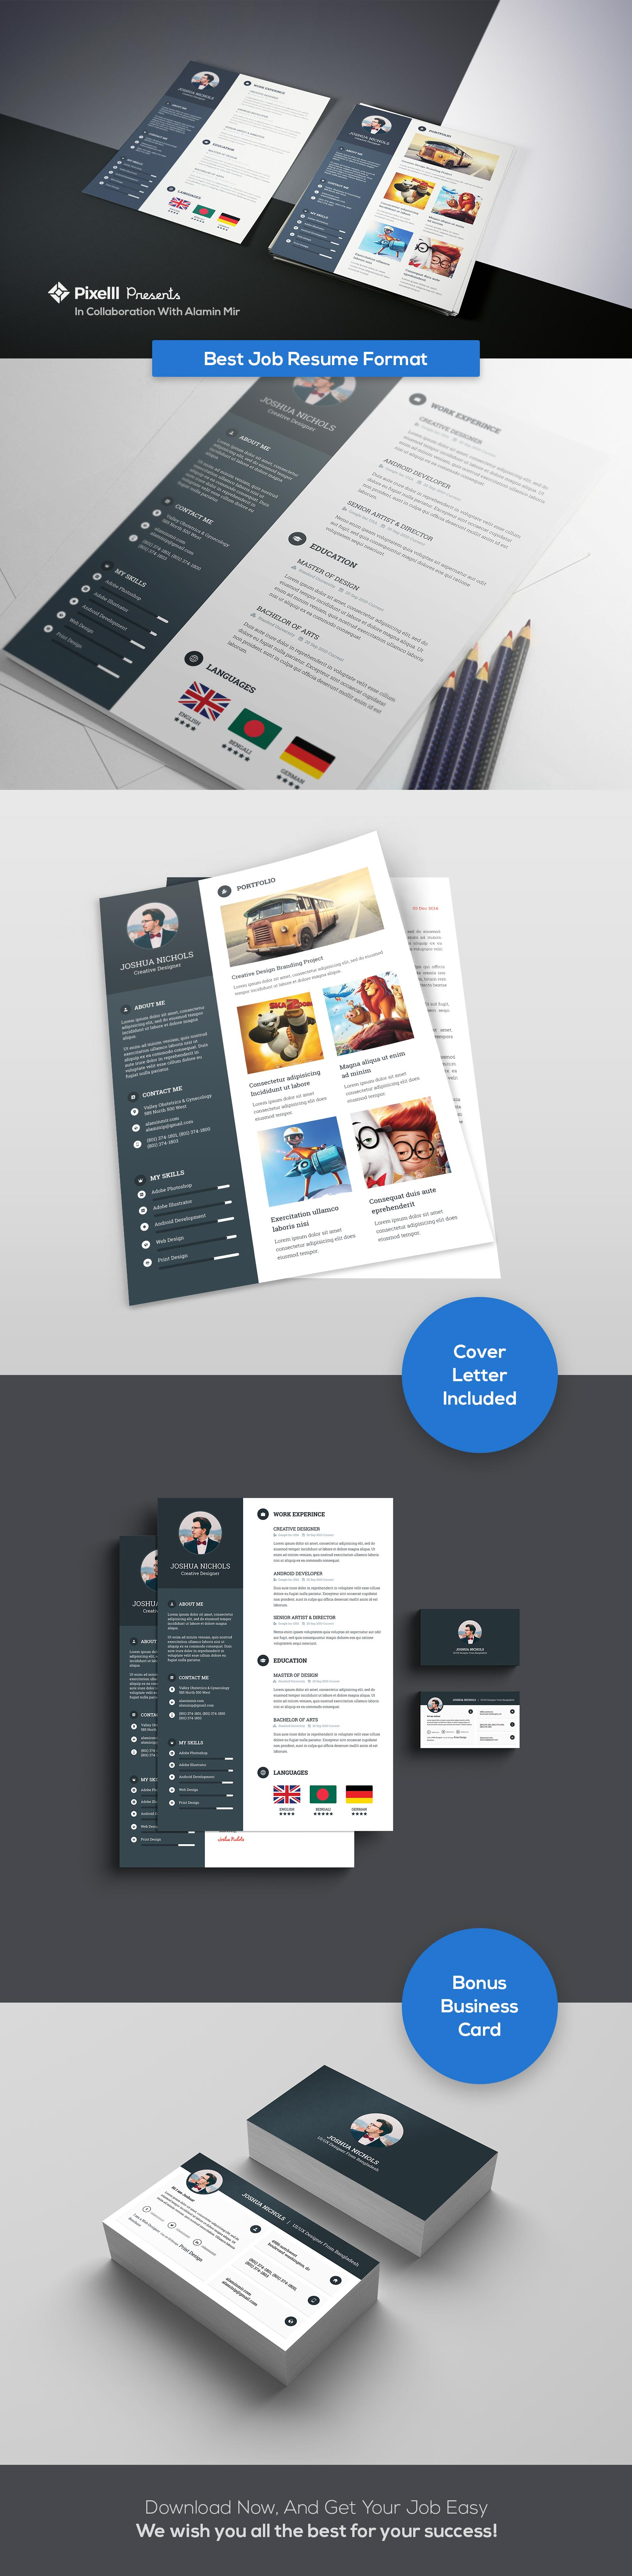 best job resume format with business card